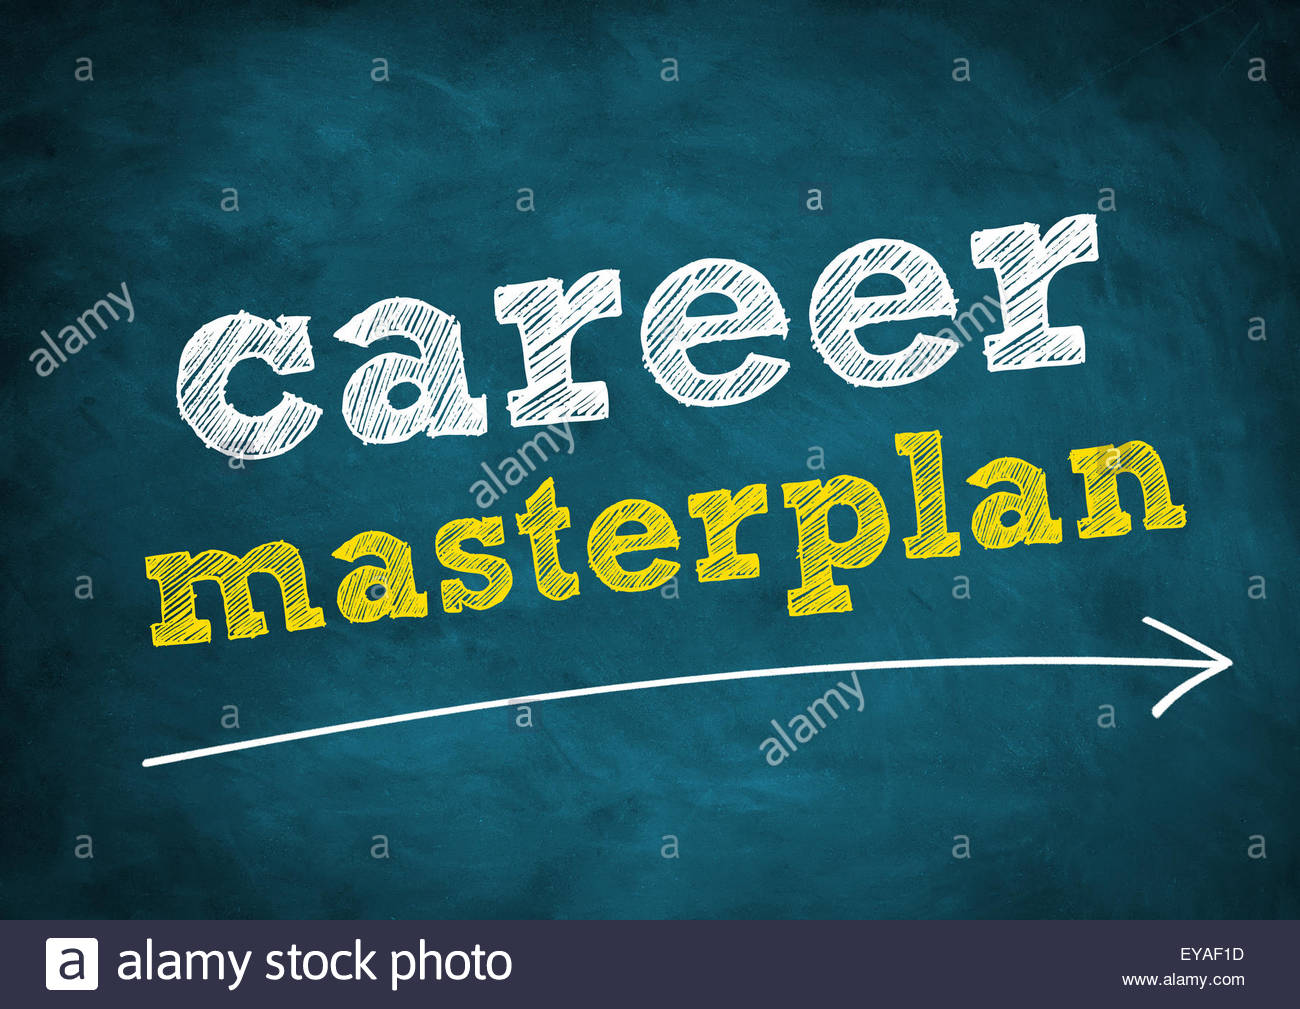 career masterplan - Stock Image